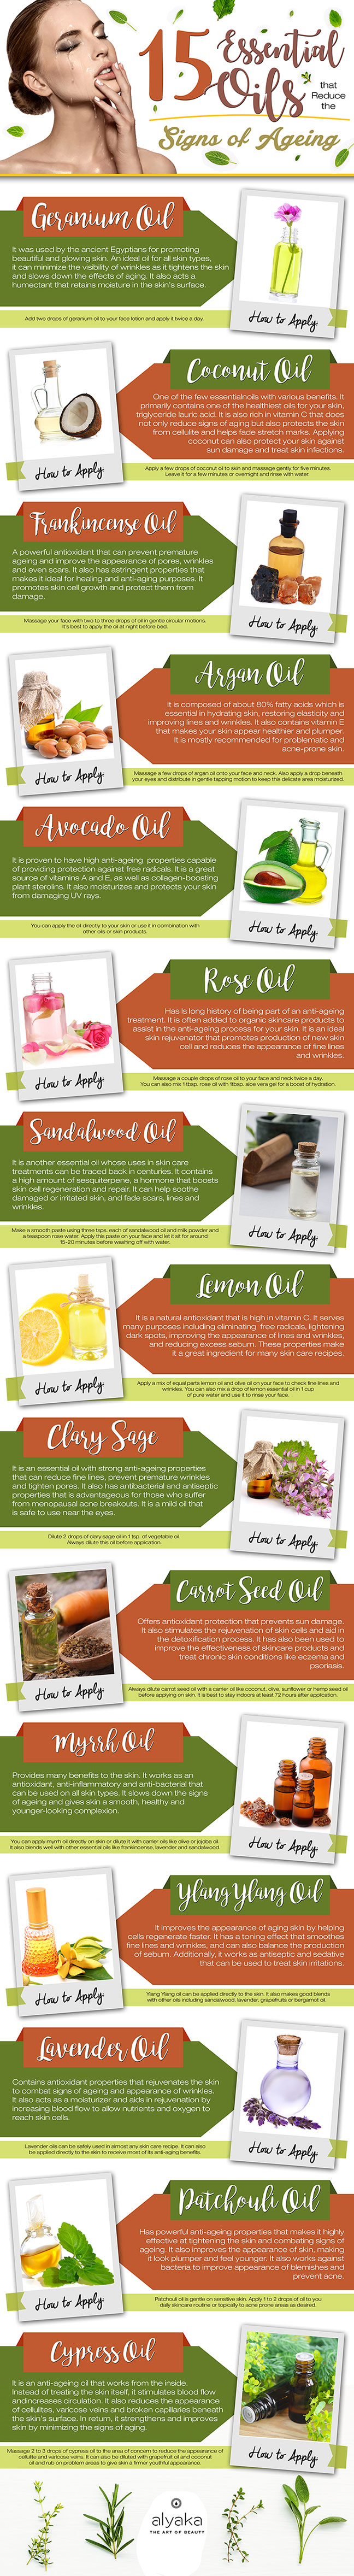 Anti-Ageing Essential Oils that You Should Start Using #infographic